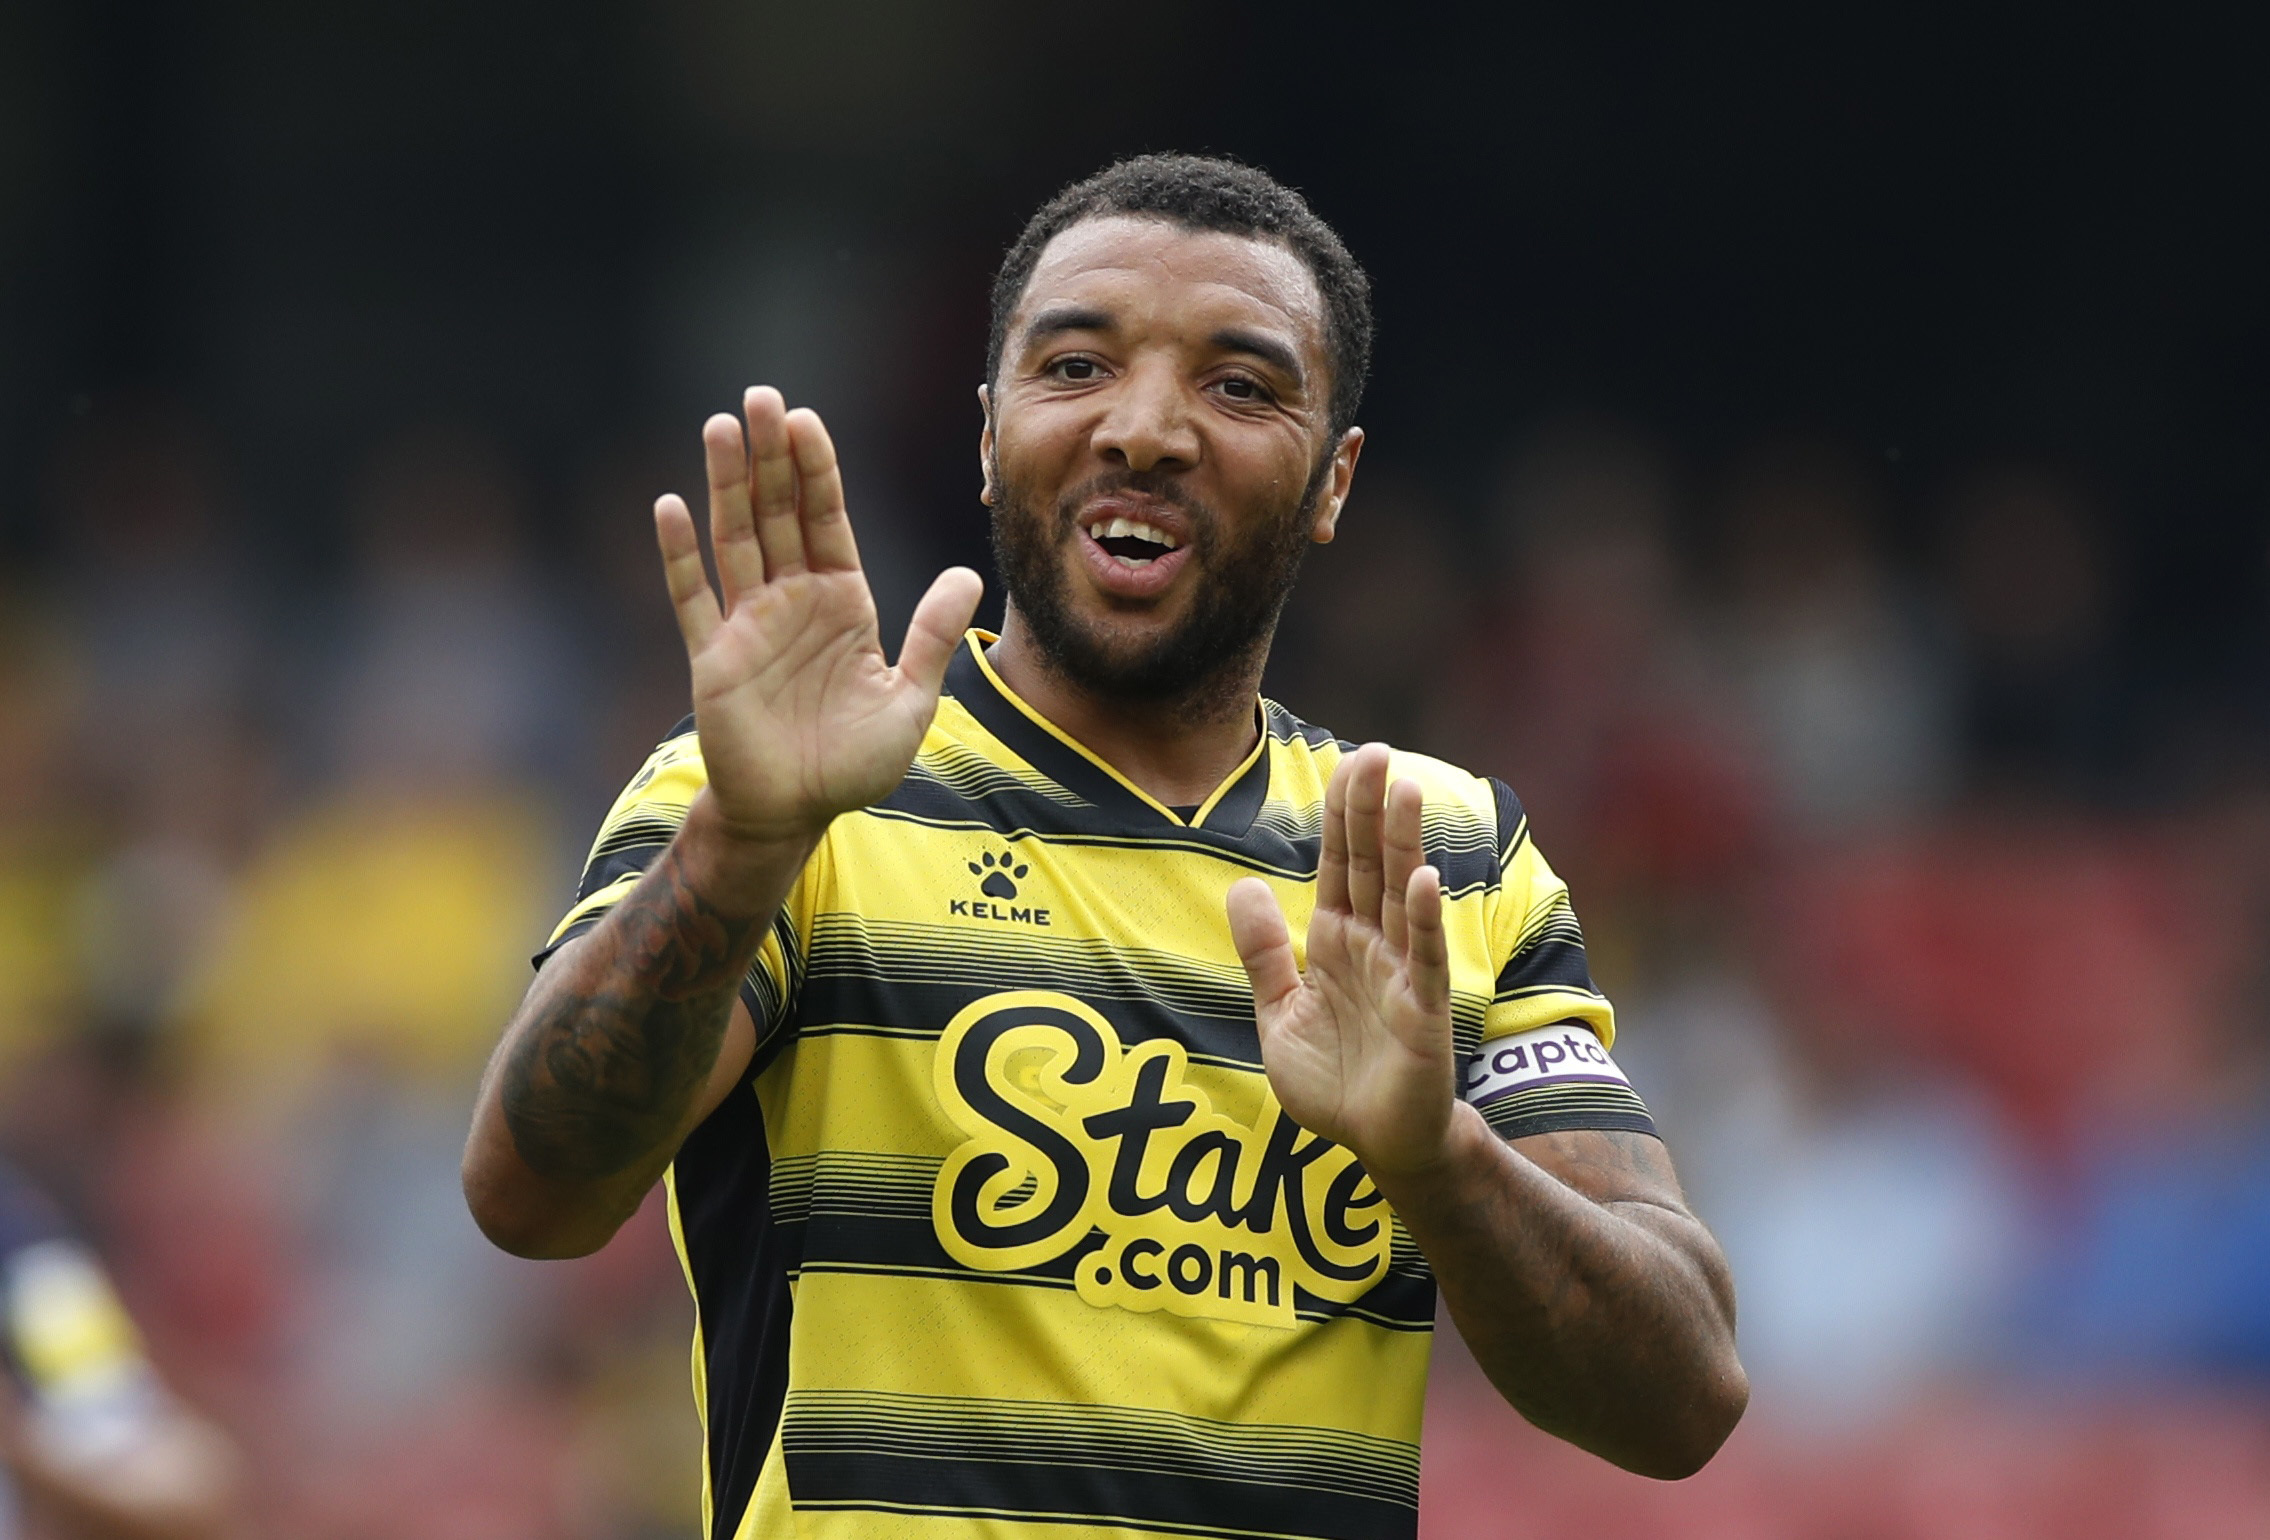 Watford beat Doncaster Rovers in pre-season friendly